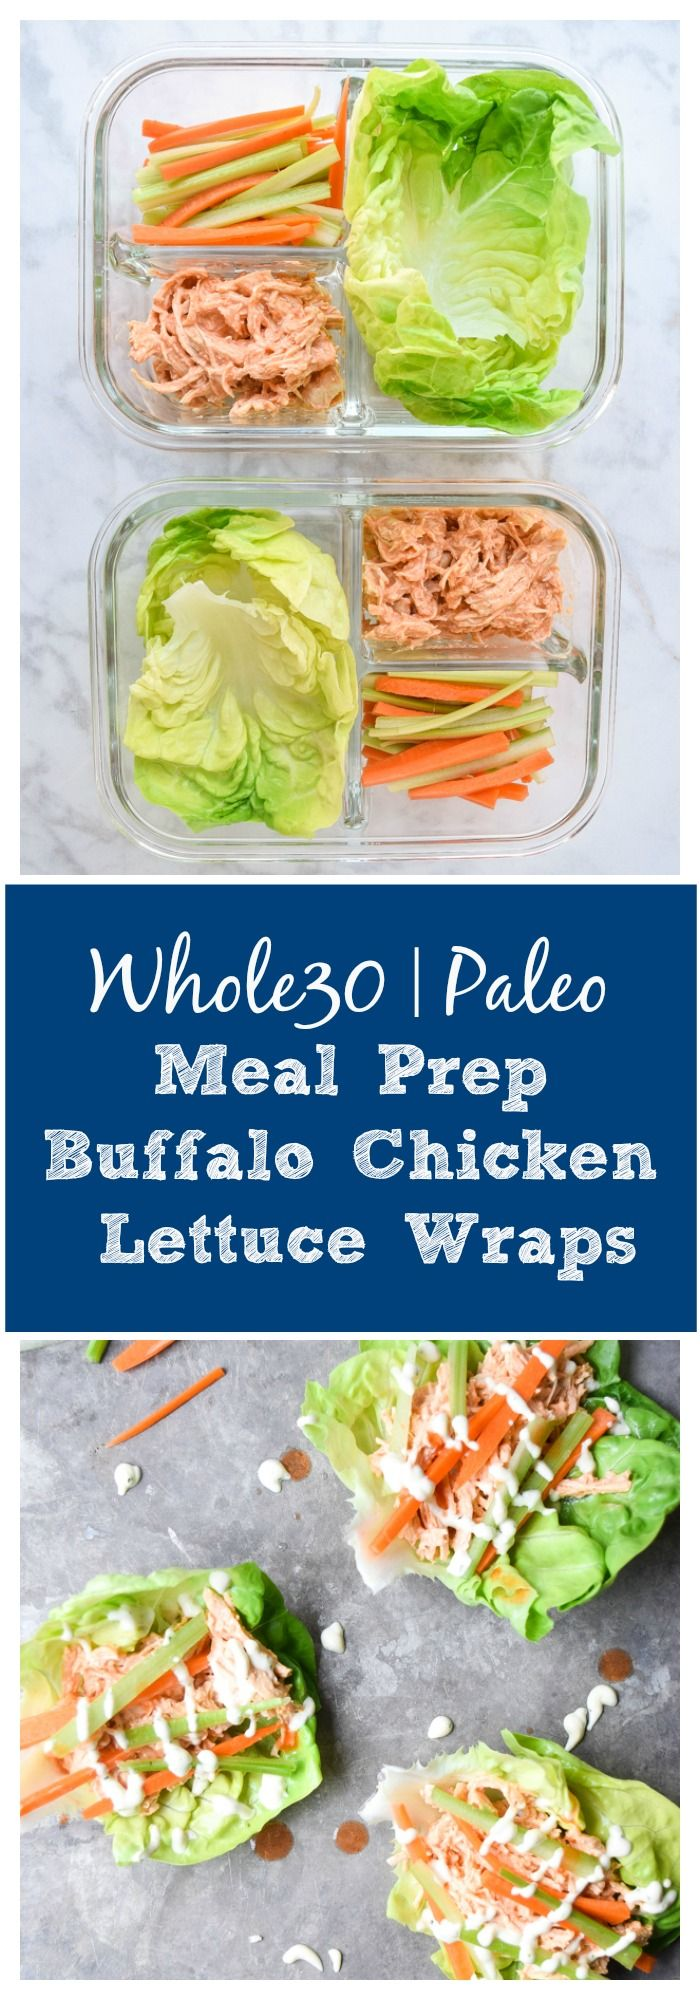 Meal Prep Buffalo Chicken Lettuce Wraps (Whole30 Paleo) - get your buffalo chicken fix with these Whole30 Meal Prep Buffalo Chicken Lettuce Wraps! Healthy, easy, and packed with tons of protein and awesome flavor! | tastythin.com